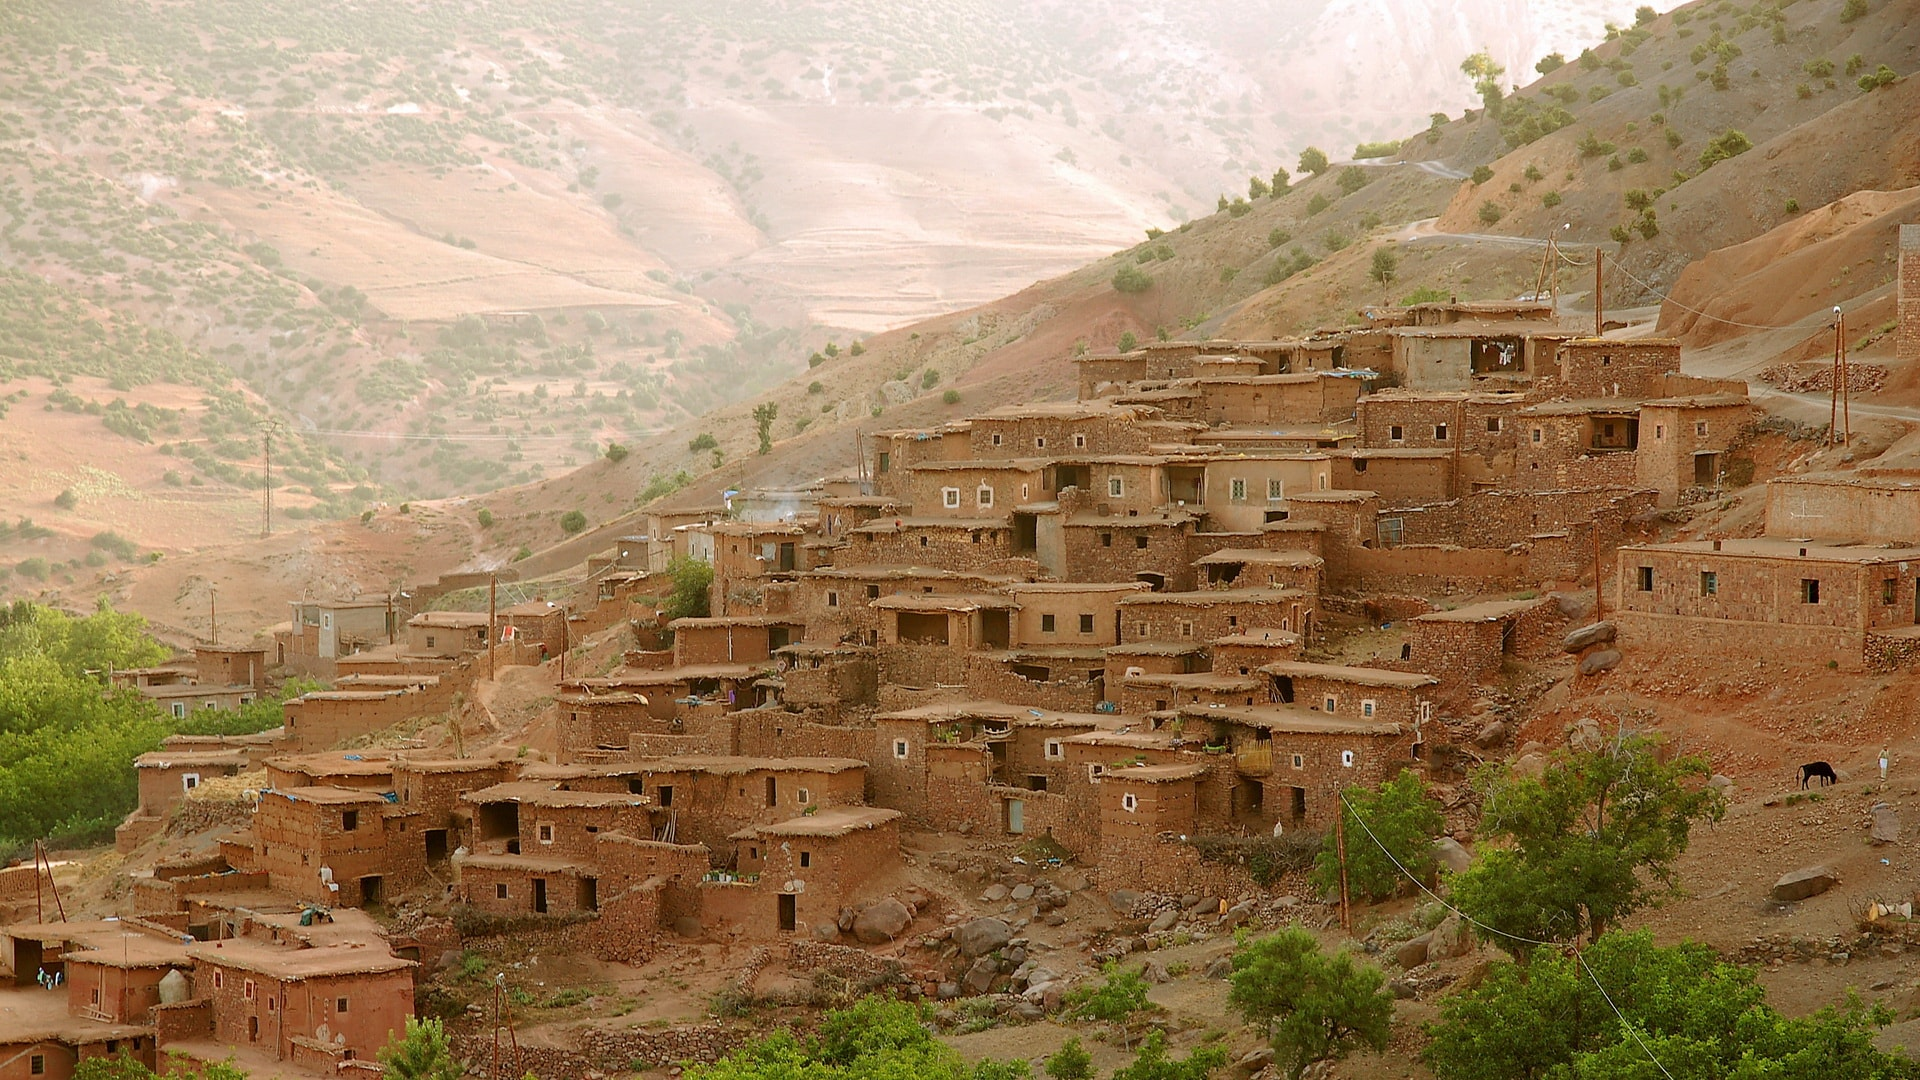 pathfinders treks - 1 day trek from marrakech to atlas mountains